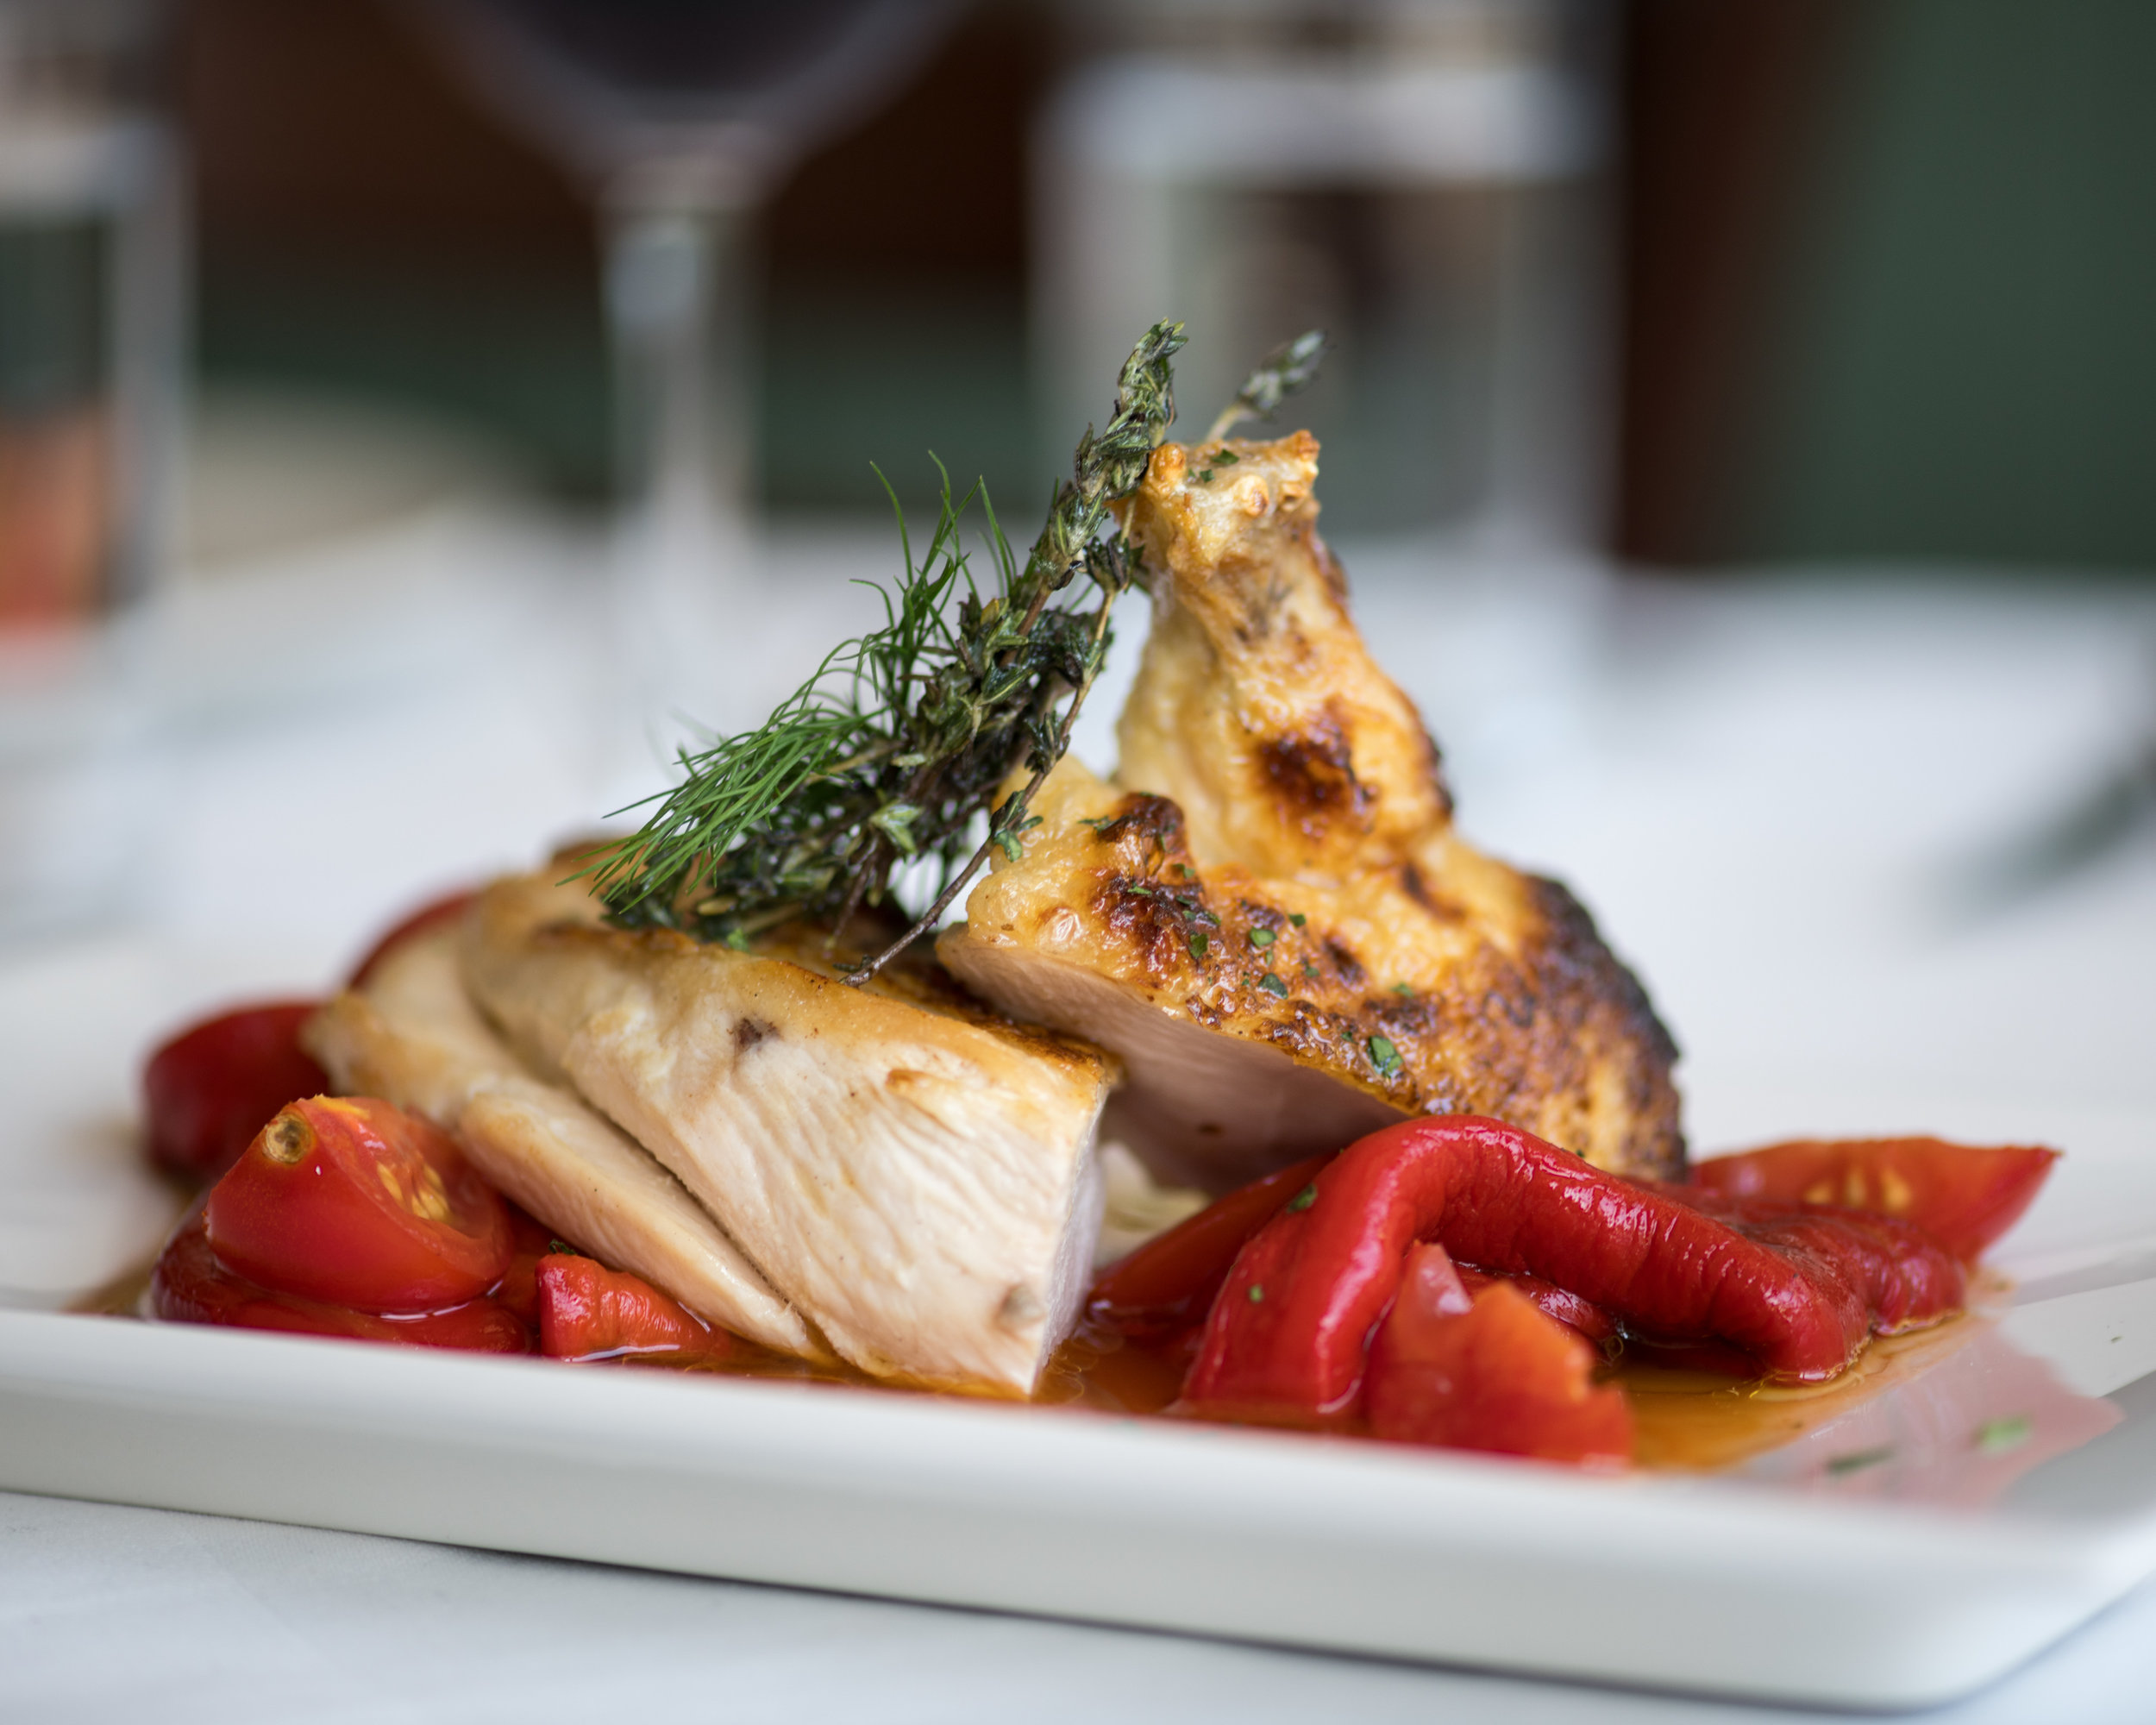 Chicken Breast, with romano peppers and cherry tomatoes.